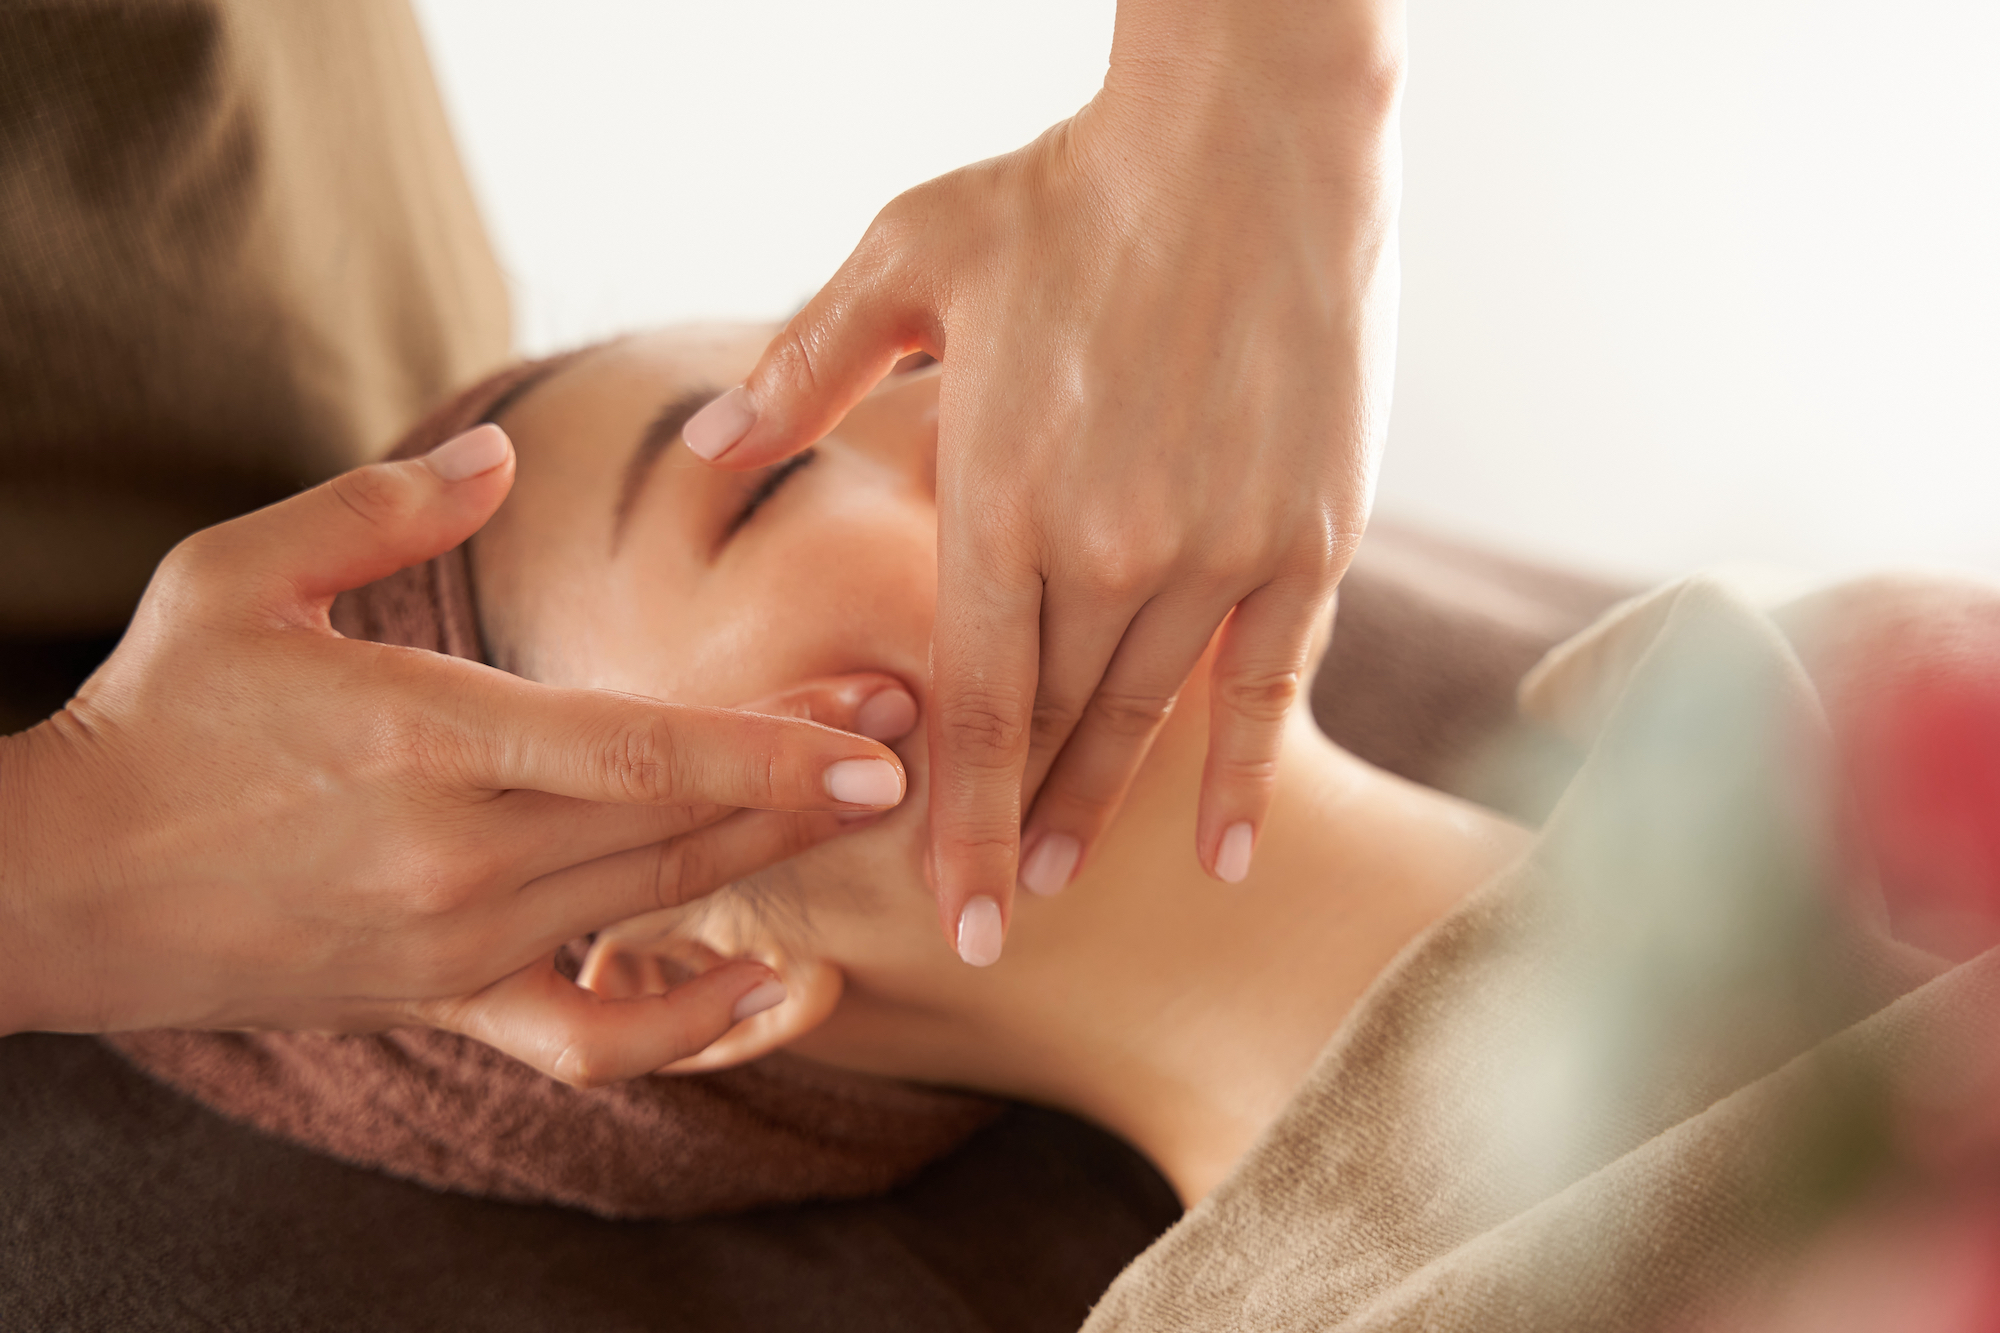 Woman getting her face massaged